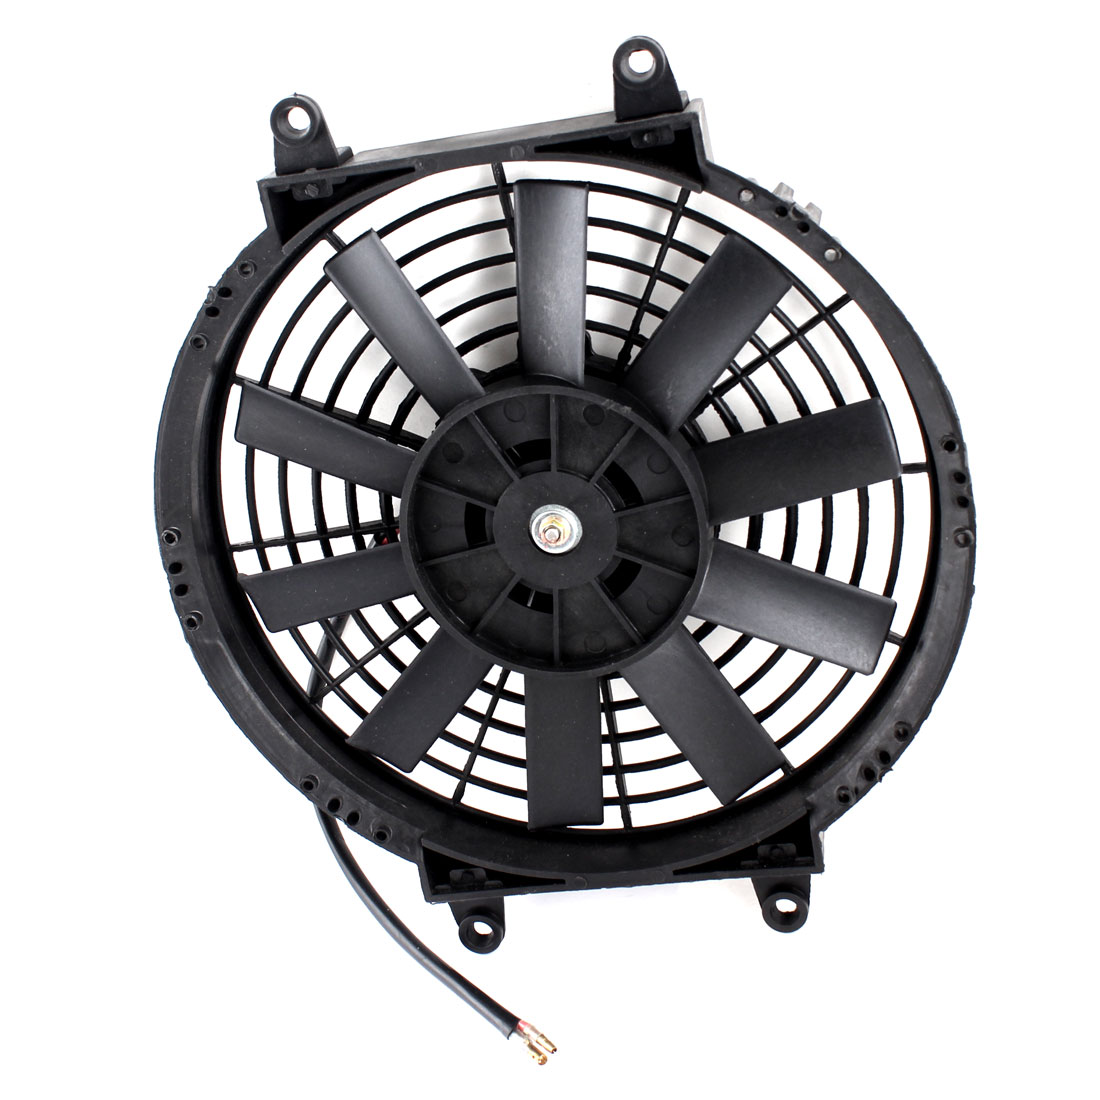 "DC 24V 2500RPM 10"" Air Conditioner Heat Sink Cooling Fan Cooler for Car"